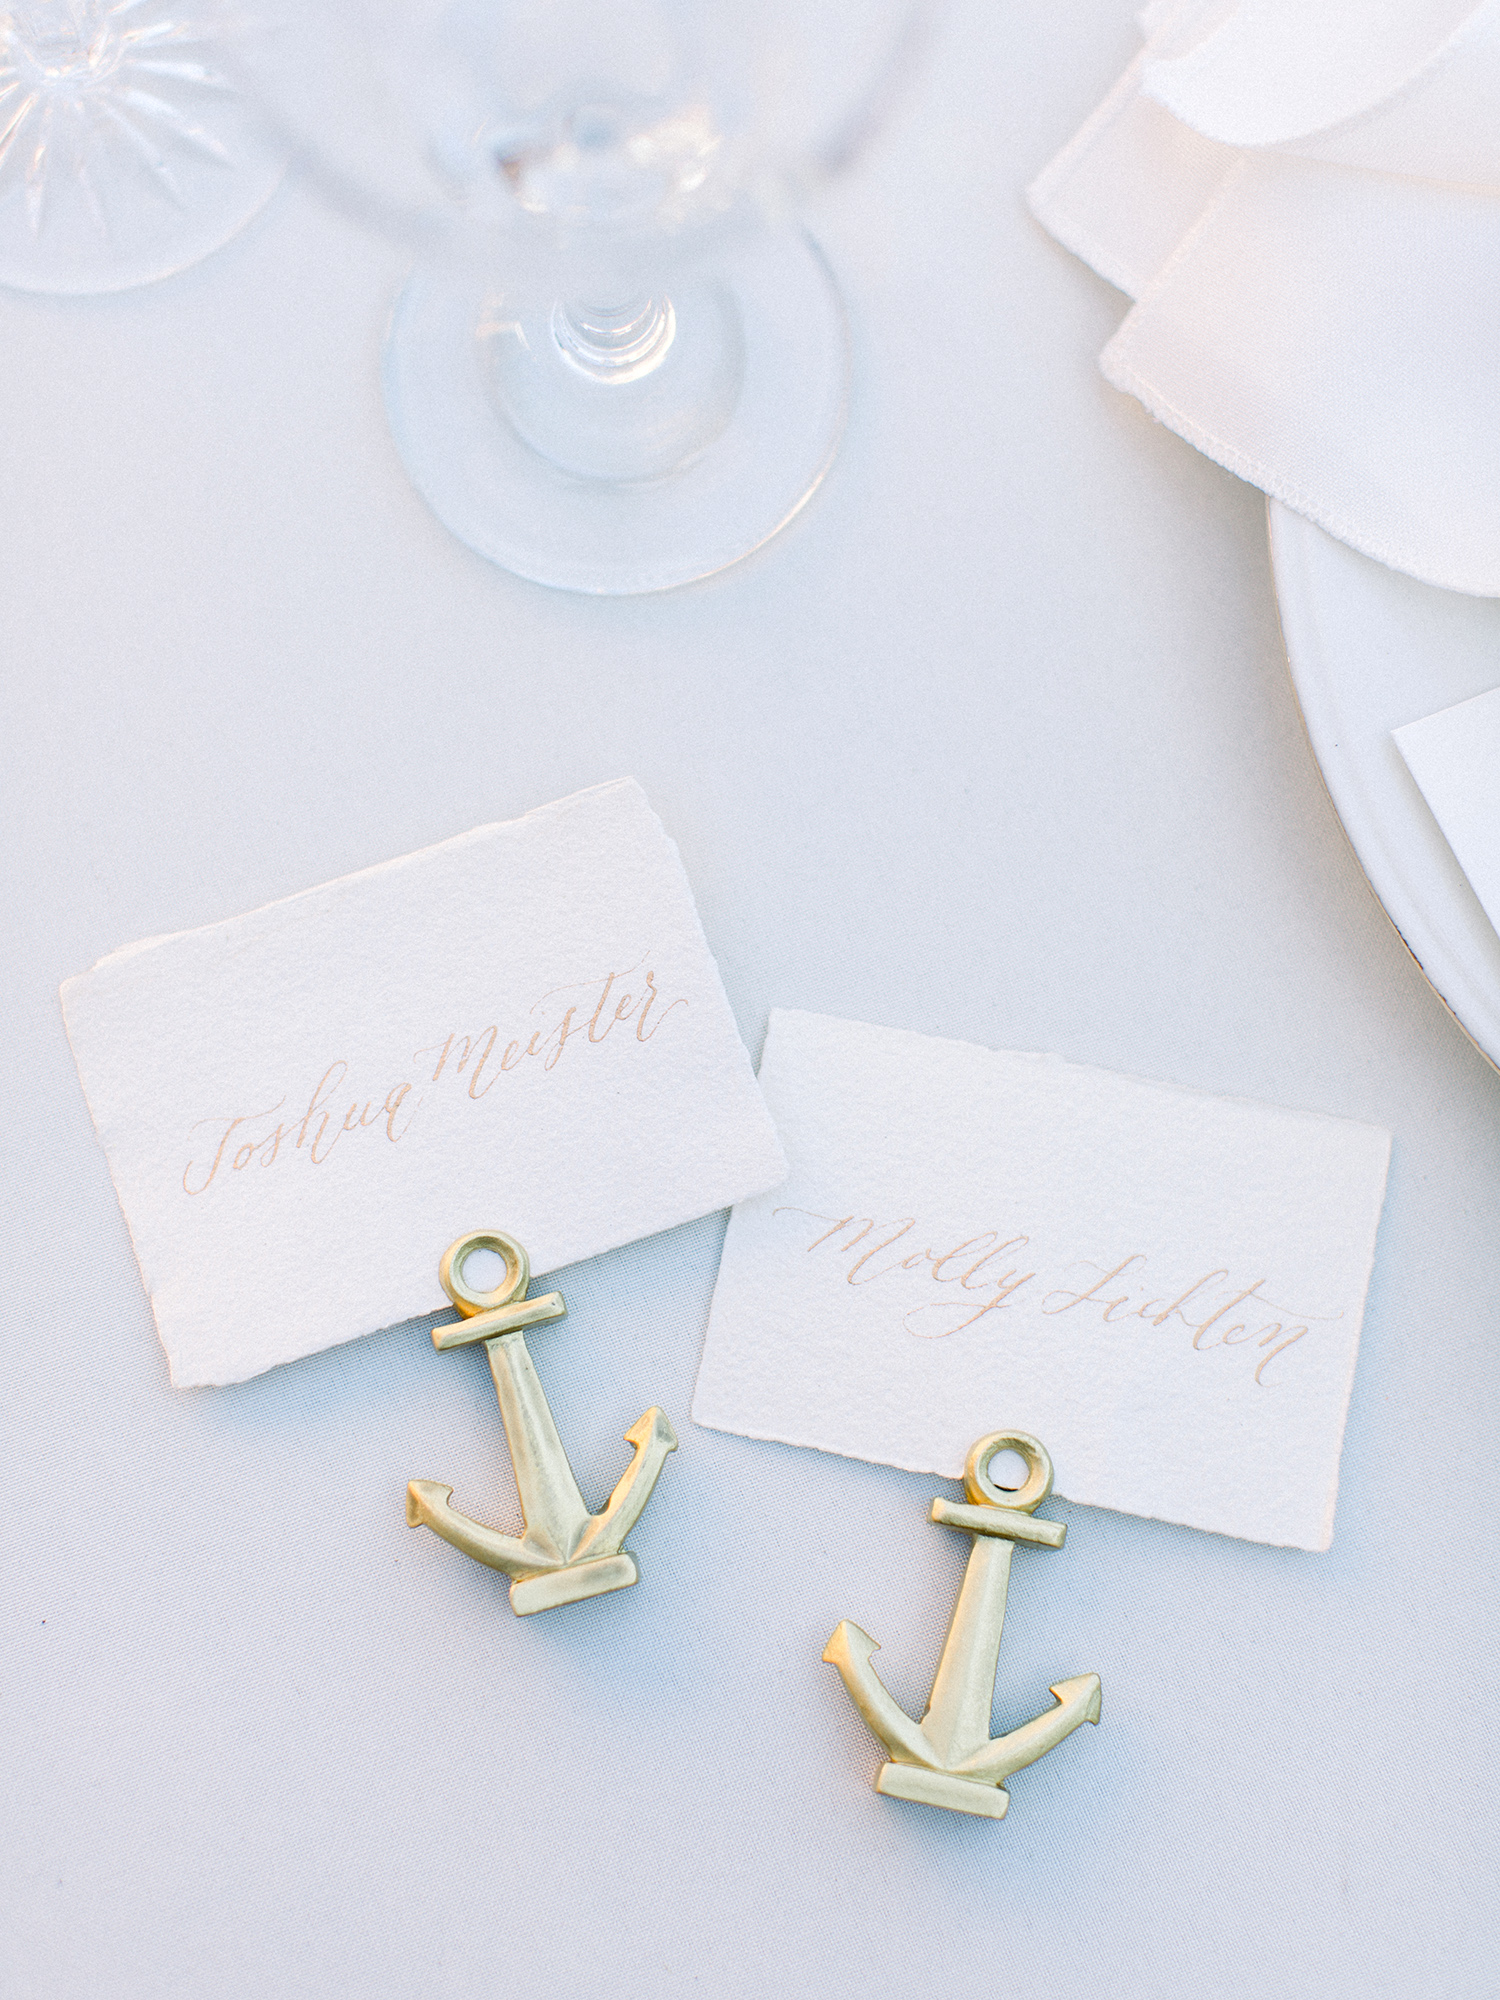 molly josh wedding place cards